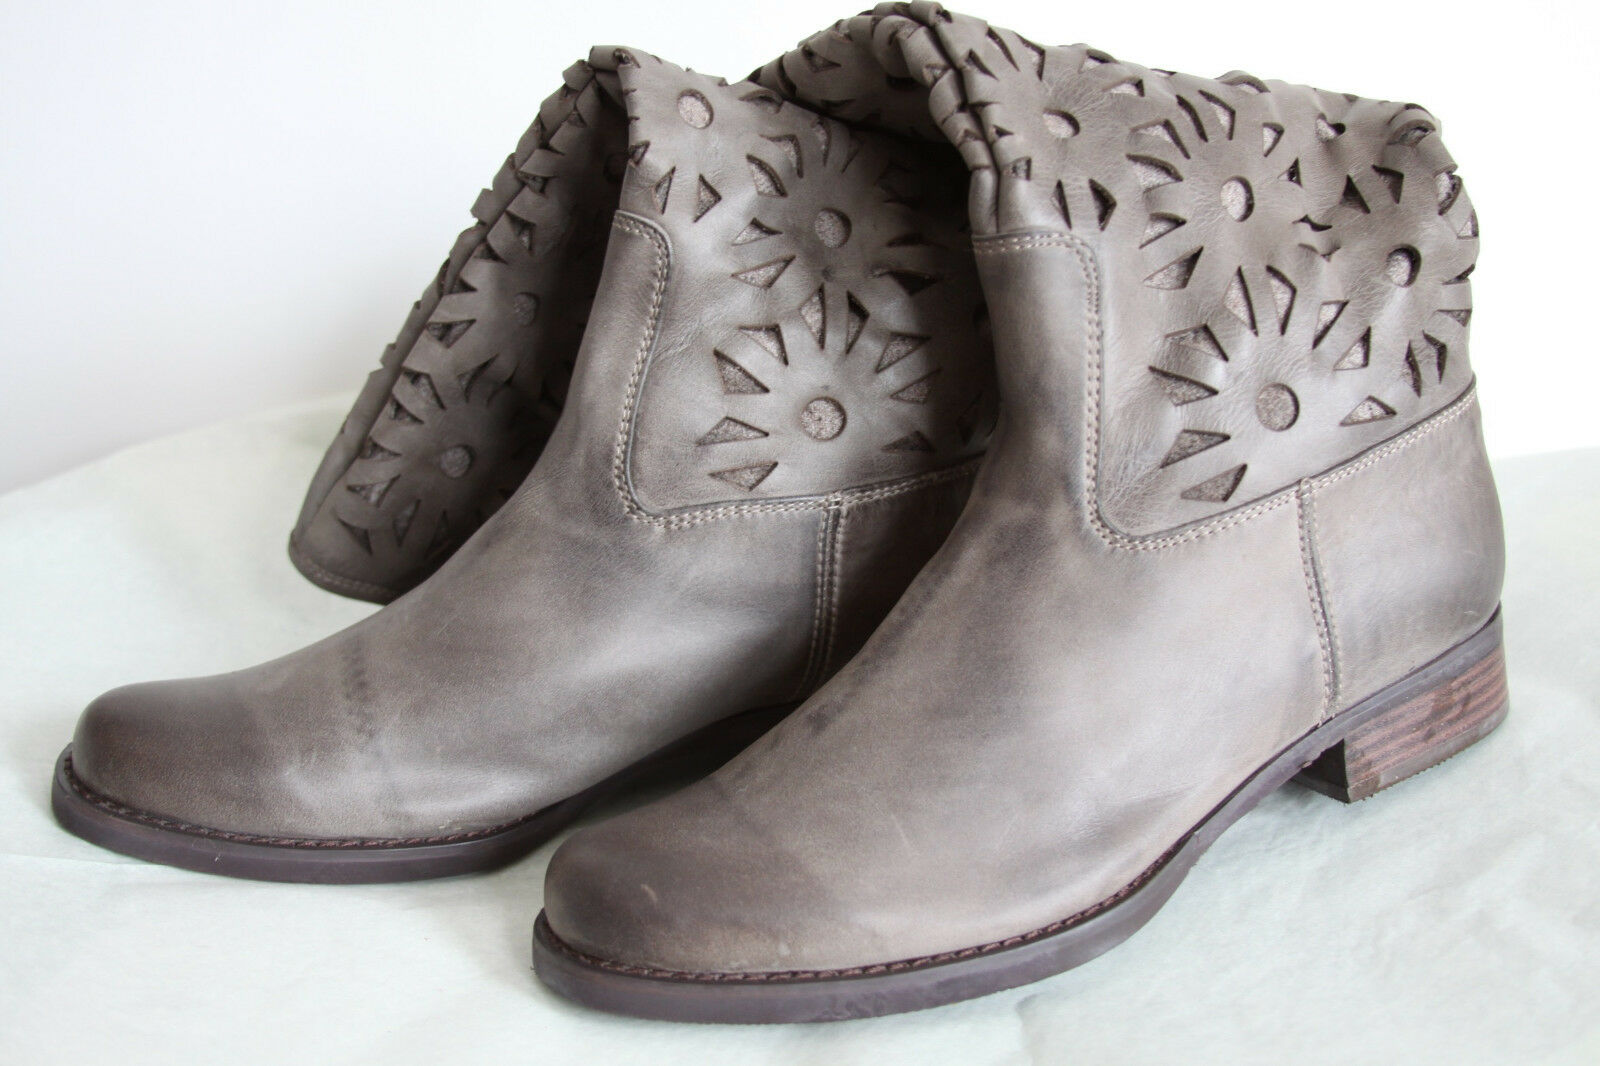 Anthropologie Peek-A-Boo Petals Boots Shoes Comfort Work Casual By Antelope, 42